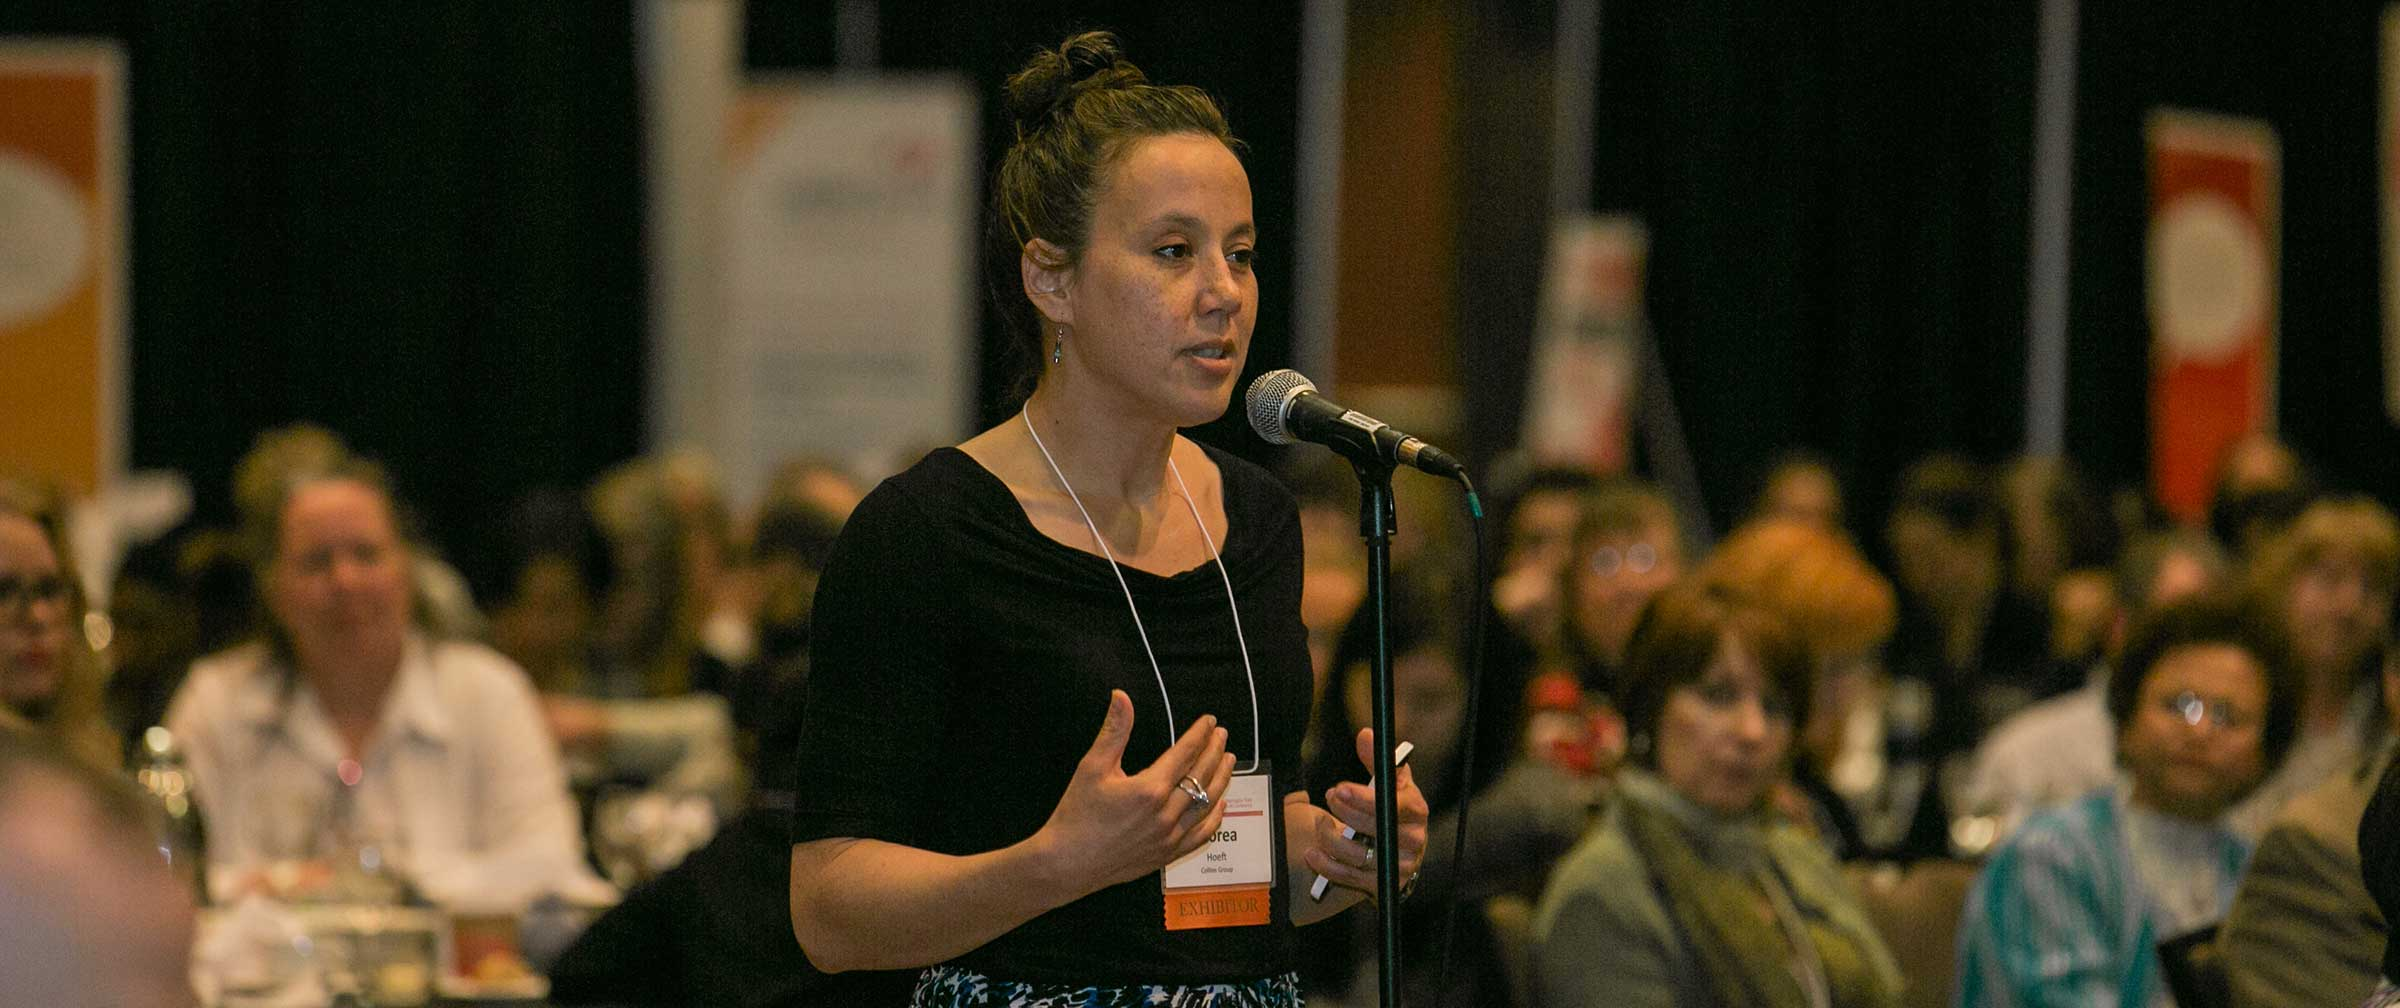 Conference attendee at microphone